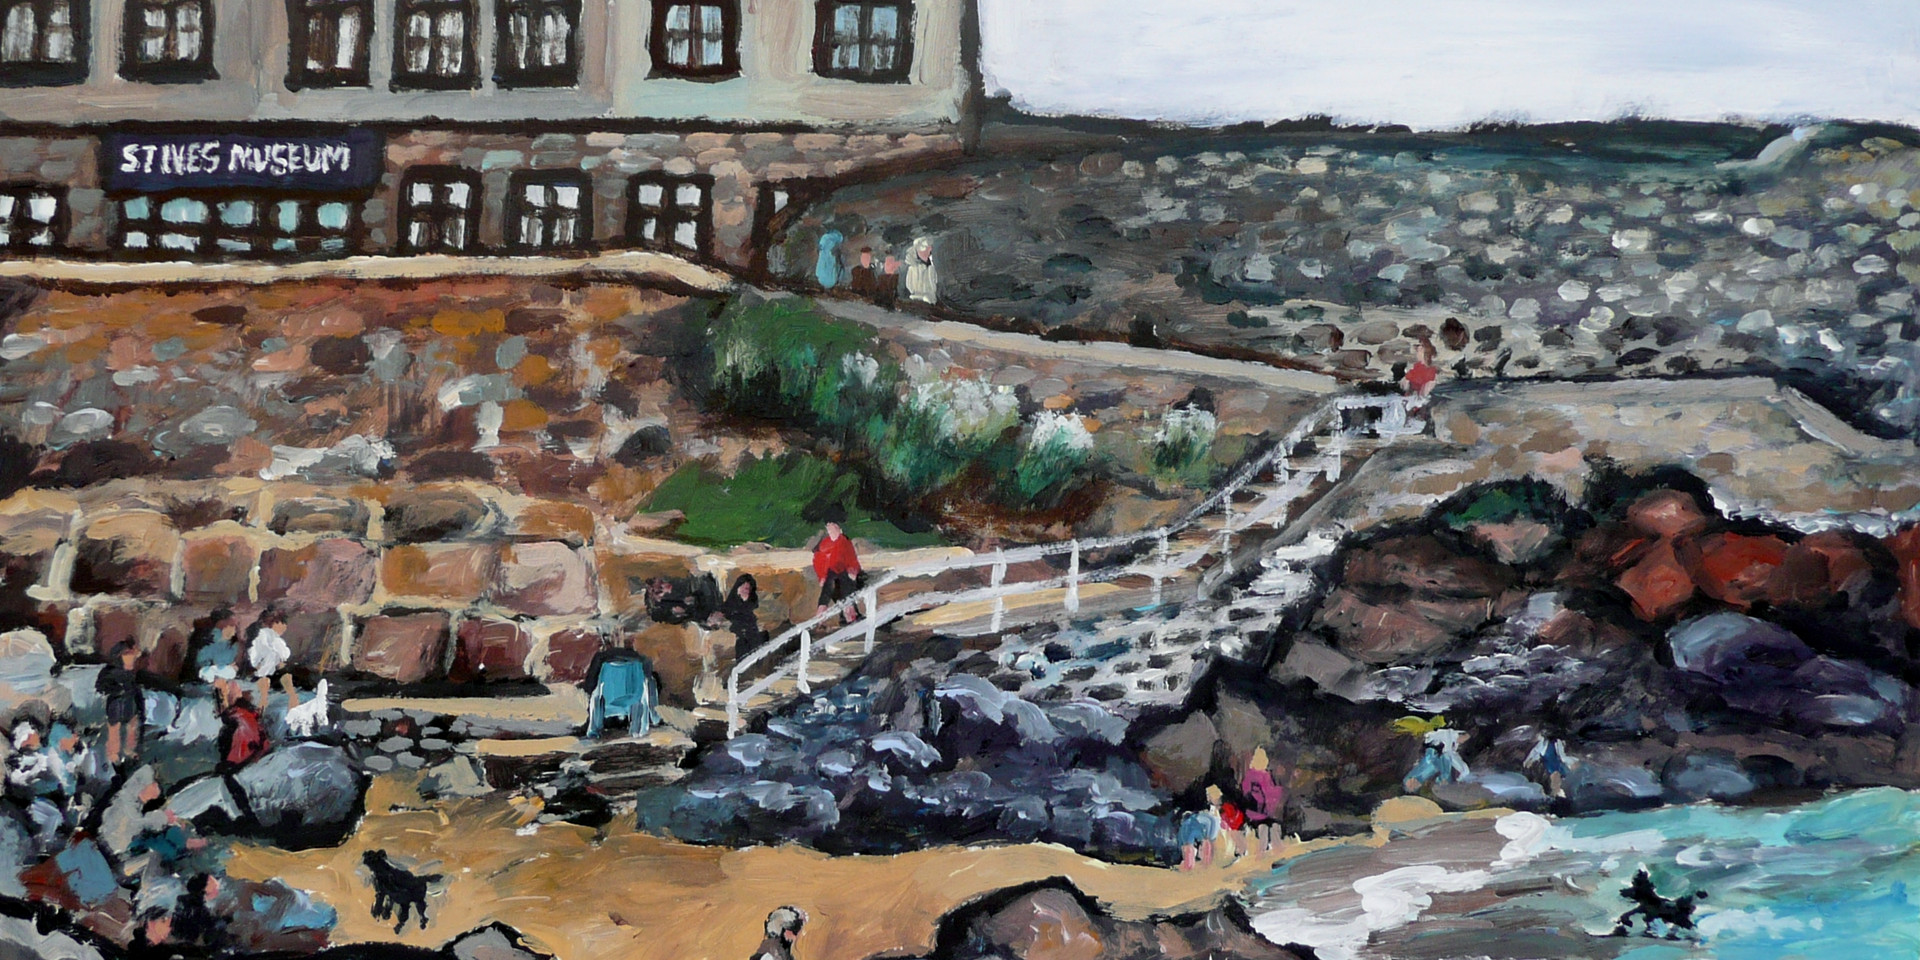 St Ives museum - size 11 x 14 inch